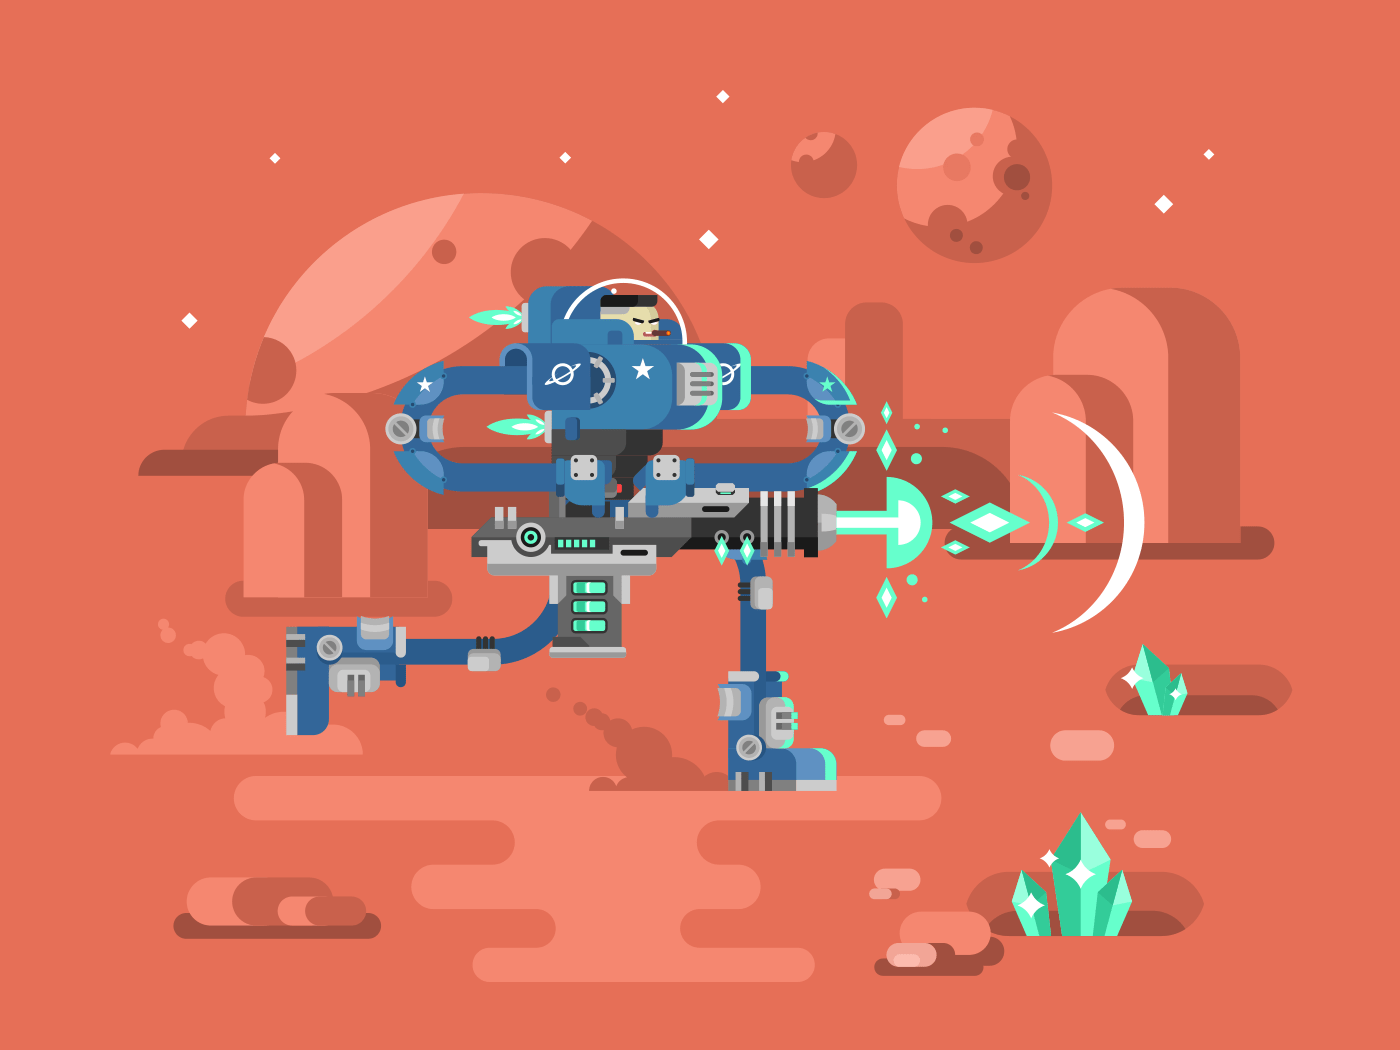 Starship troopers character flat vector illustration